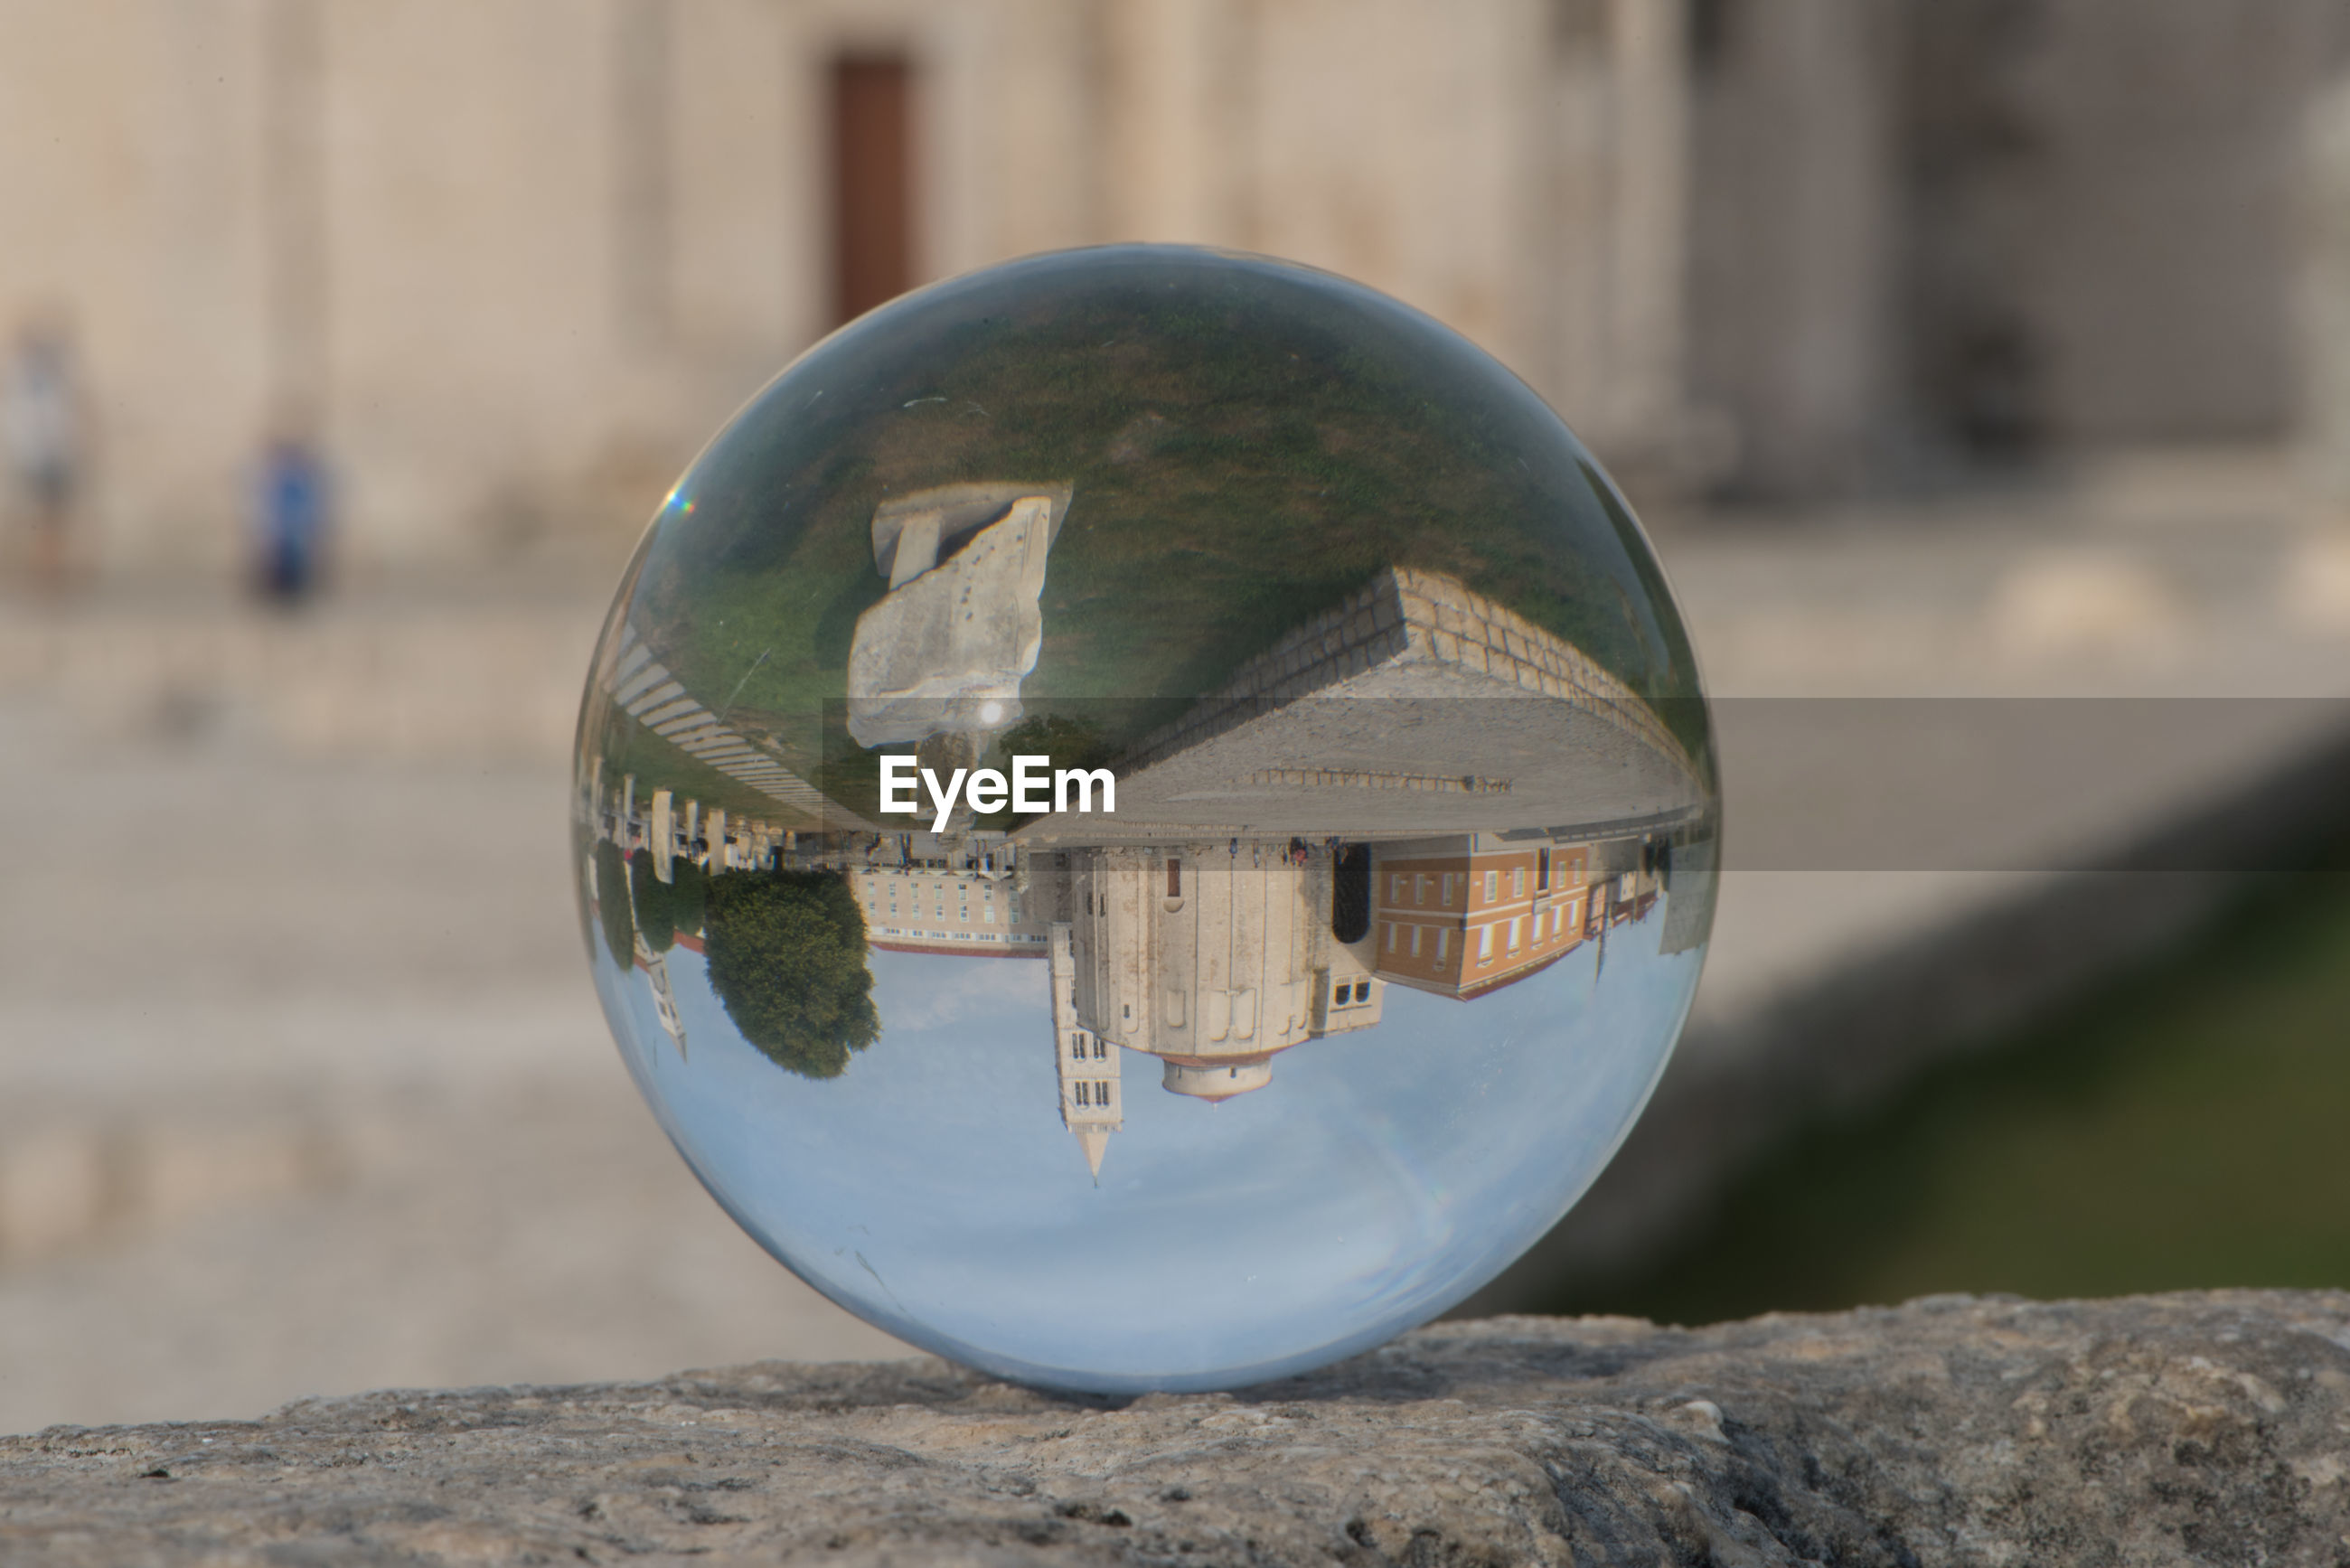 CLOSE-UP OF CRYSTAL BALL ON GLASS OF STONE